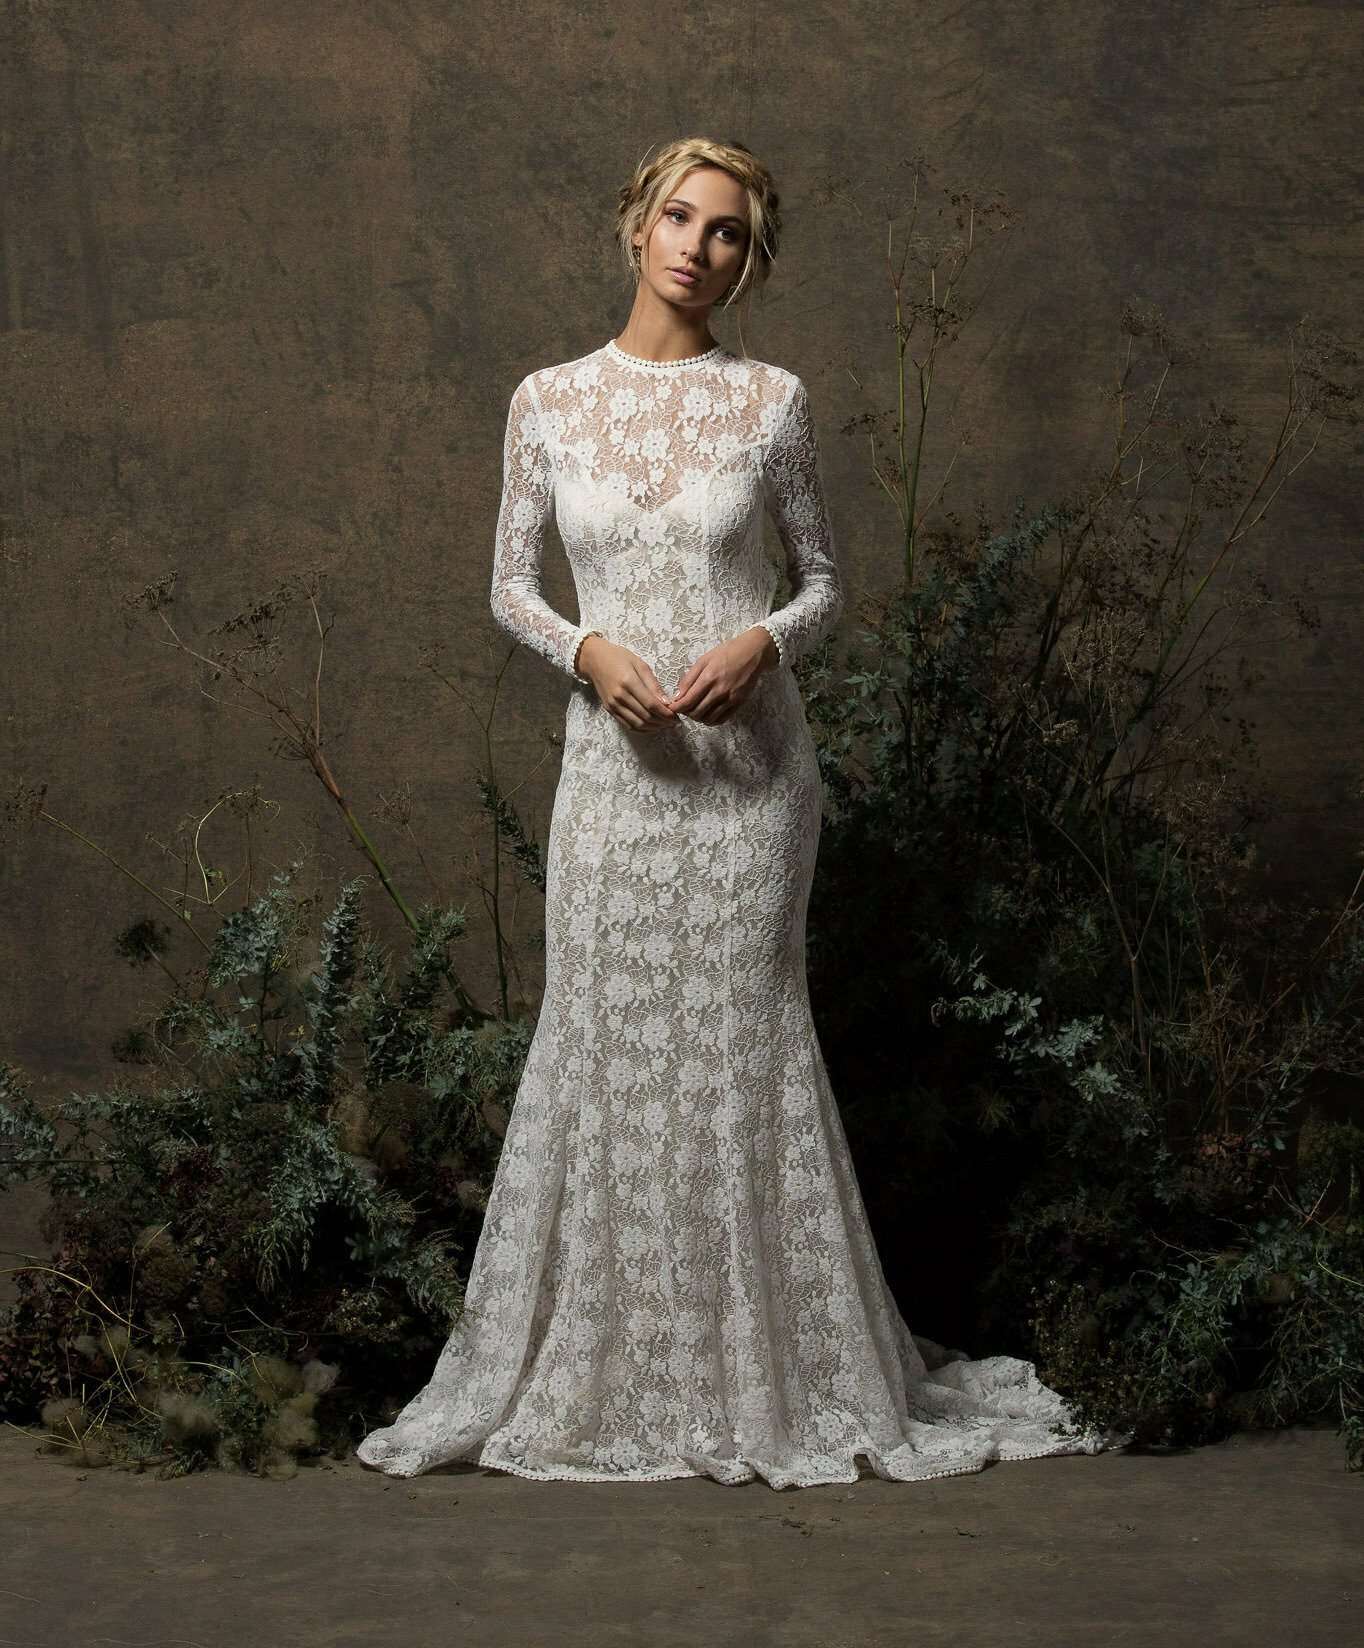 Kristen long sleeve lace wedding dress dreamers and lovers long sleeved off white lace dress with nude junglespirit Gallery